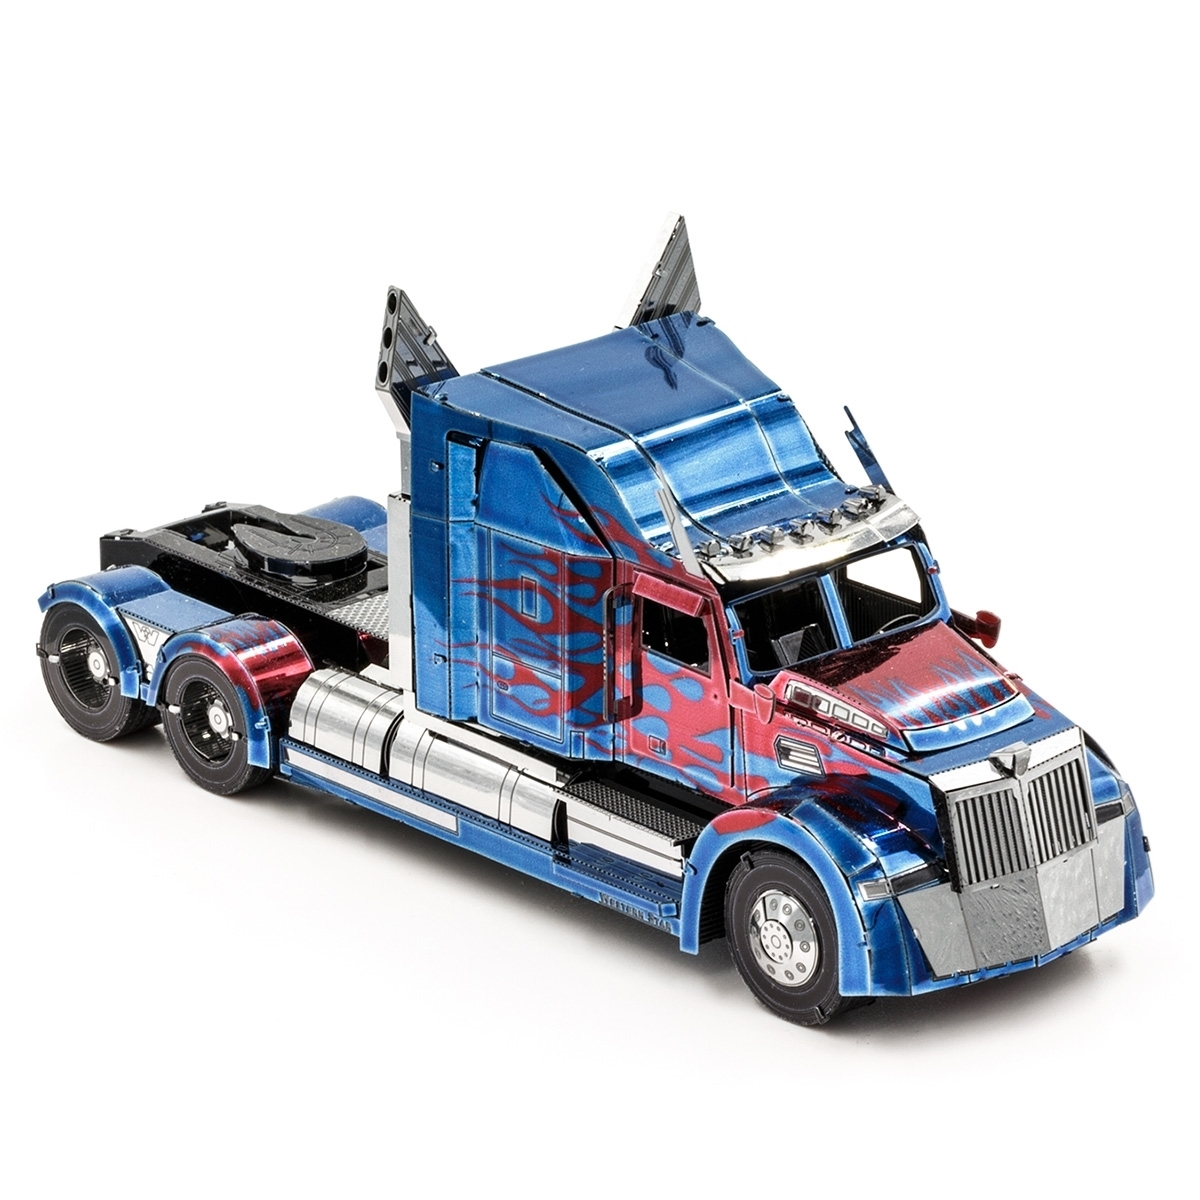 Fascinations ICONX Transformers Optimus Prime Western Star 5700 Truck Model Kit